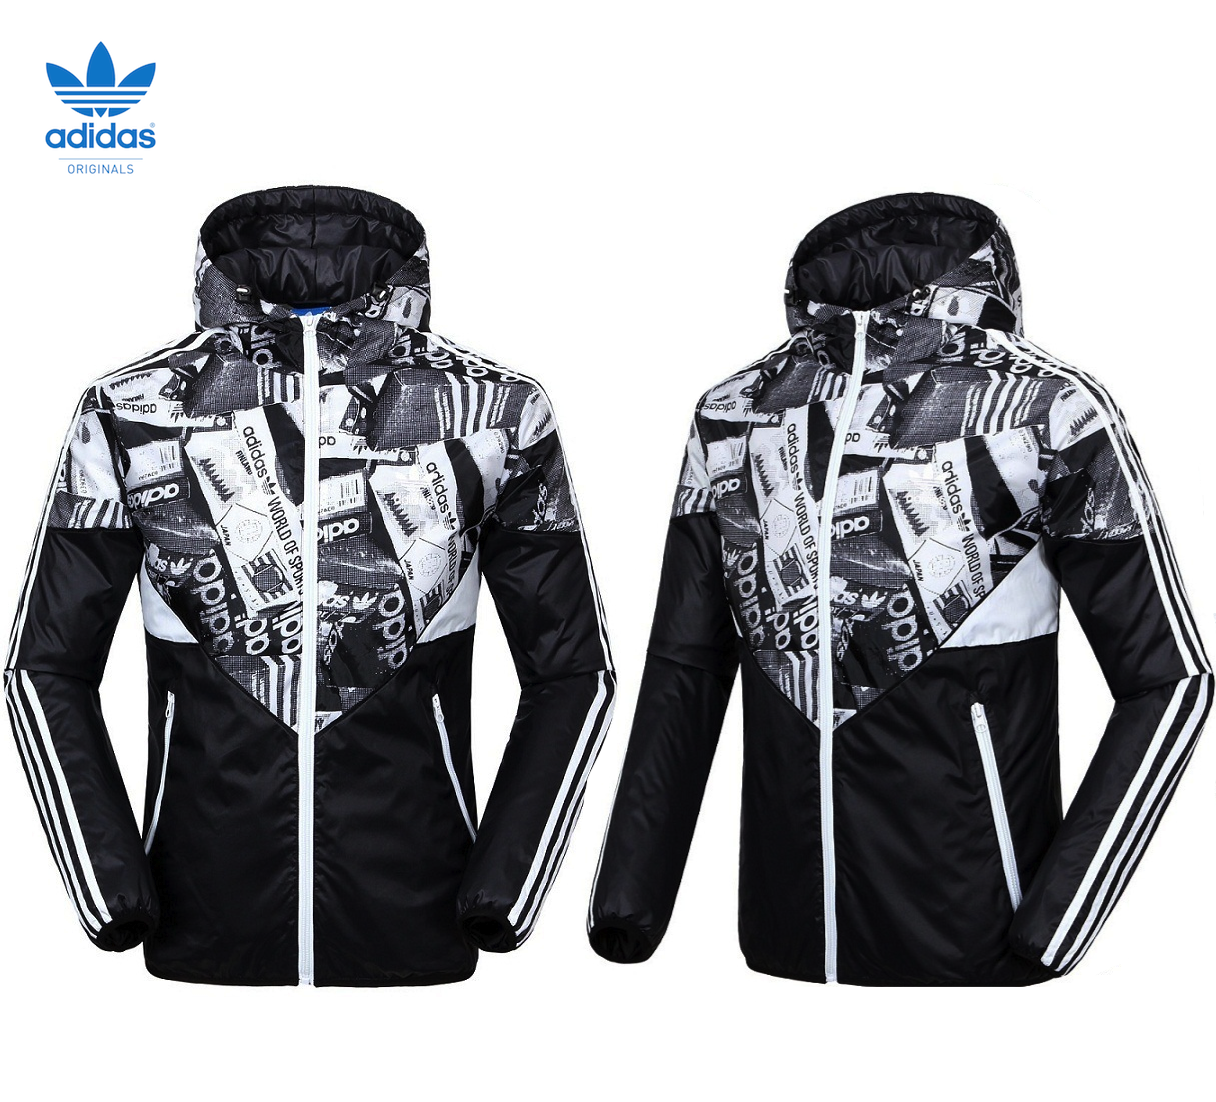 "Спортивная куртка Adidas Originals ""Boxtory Colorado"" (с утеплителем)"